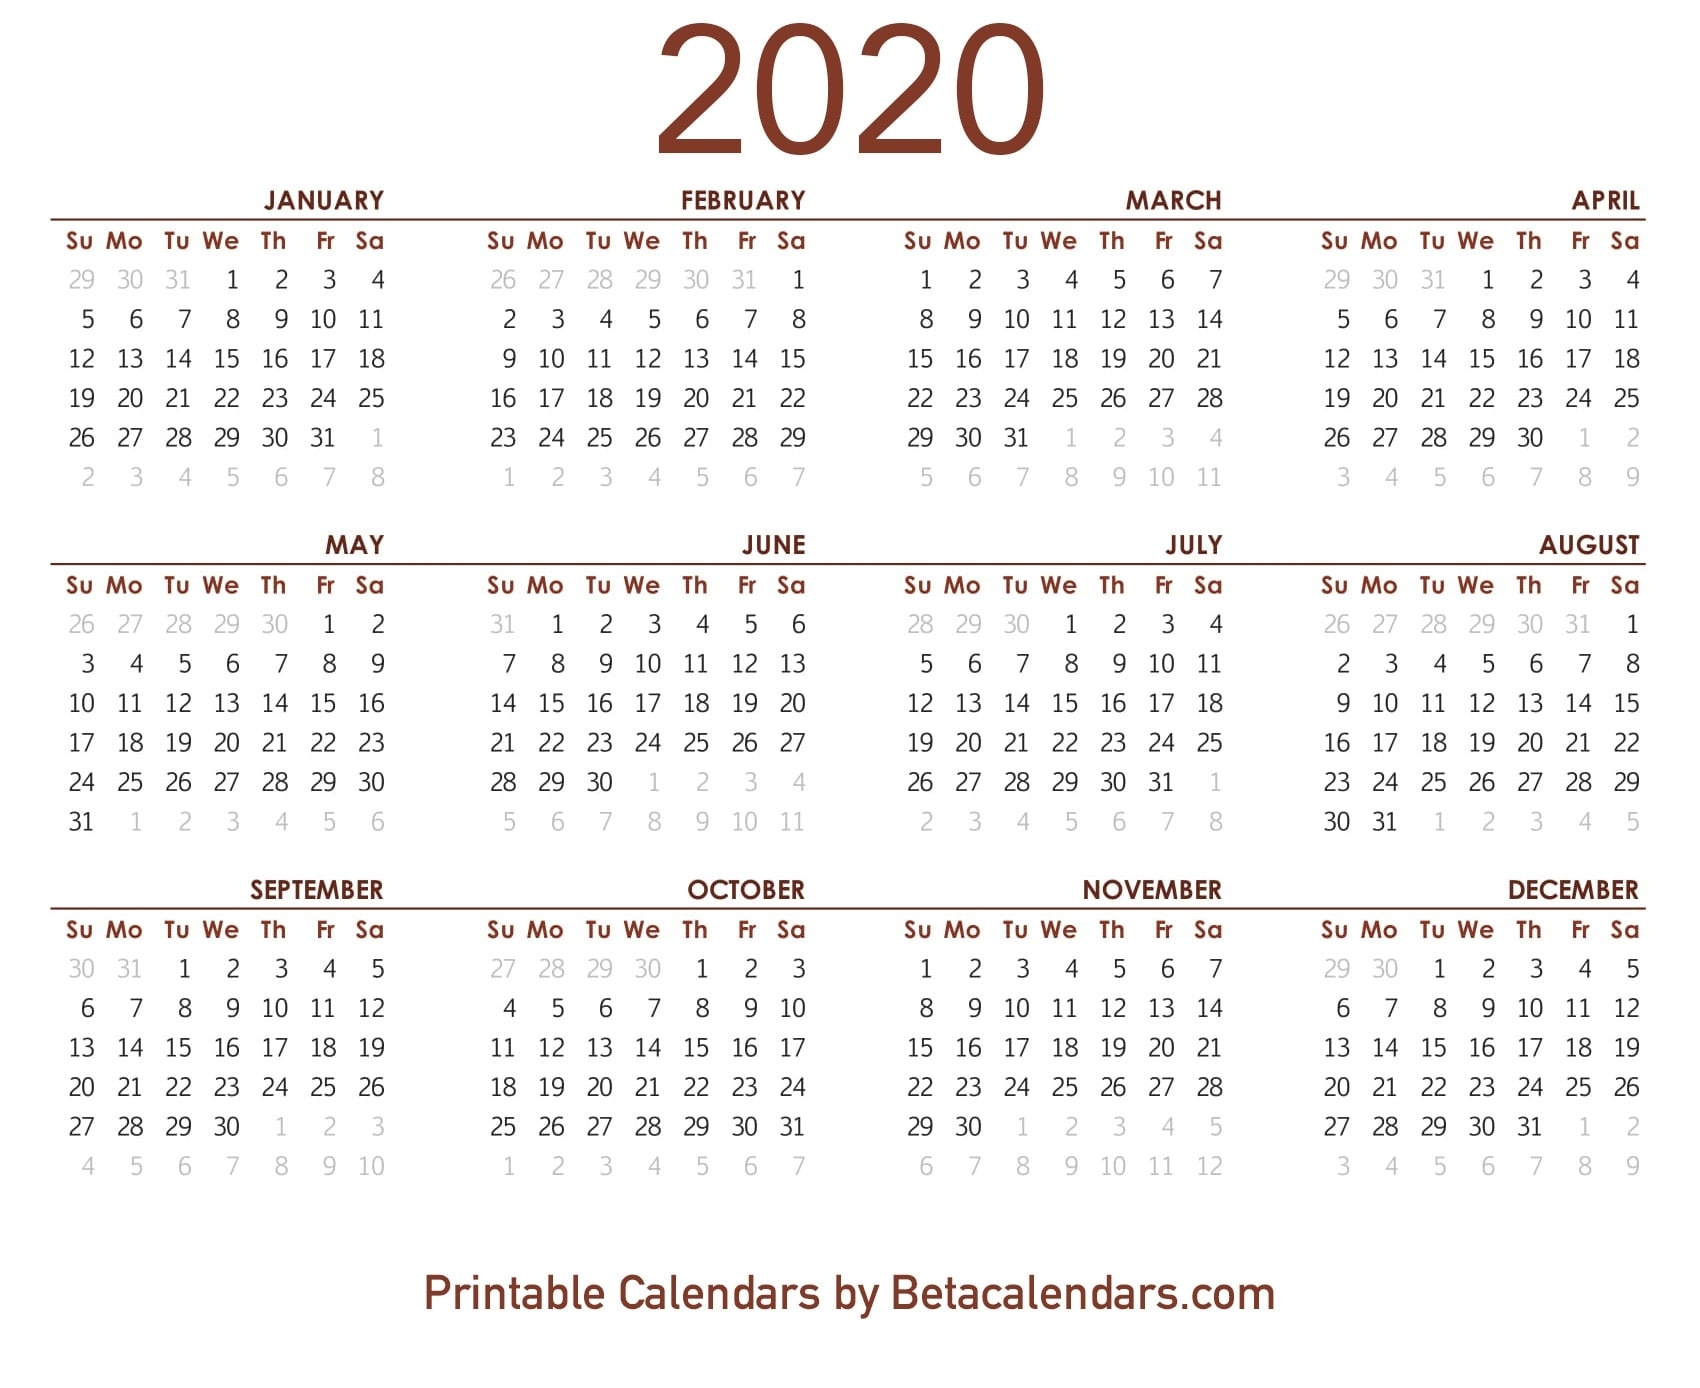 2020 Calendar - Free Printable Yearly Calendar 2020 intended for Free Printable 2020 Calendars You Don't Have To Download